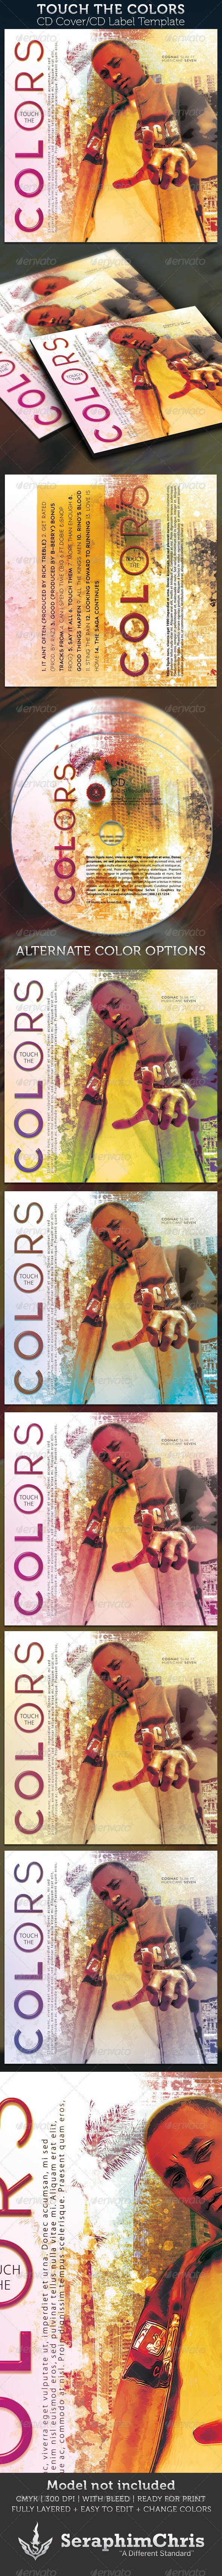 Touch The Colors CD Cover Artwork and Label